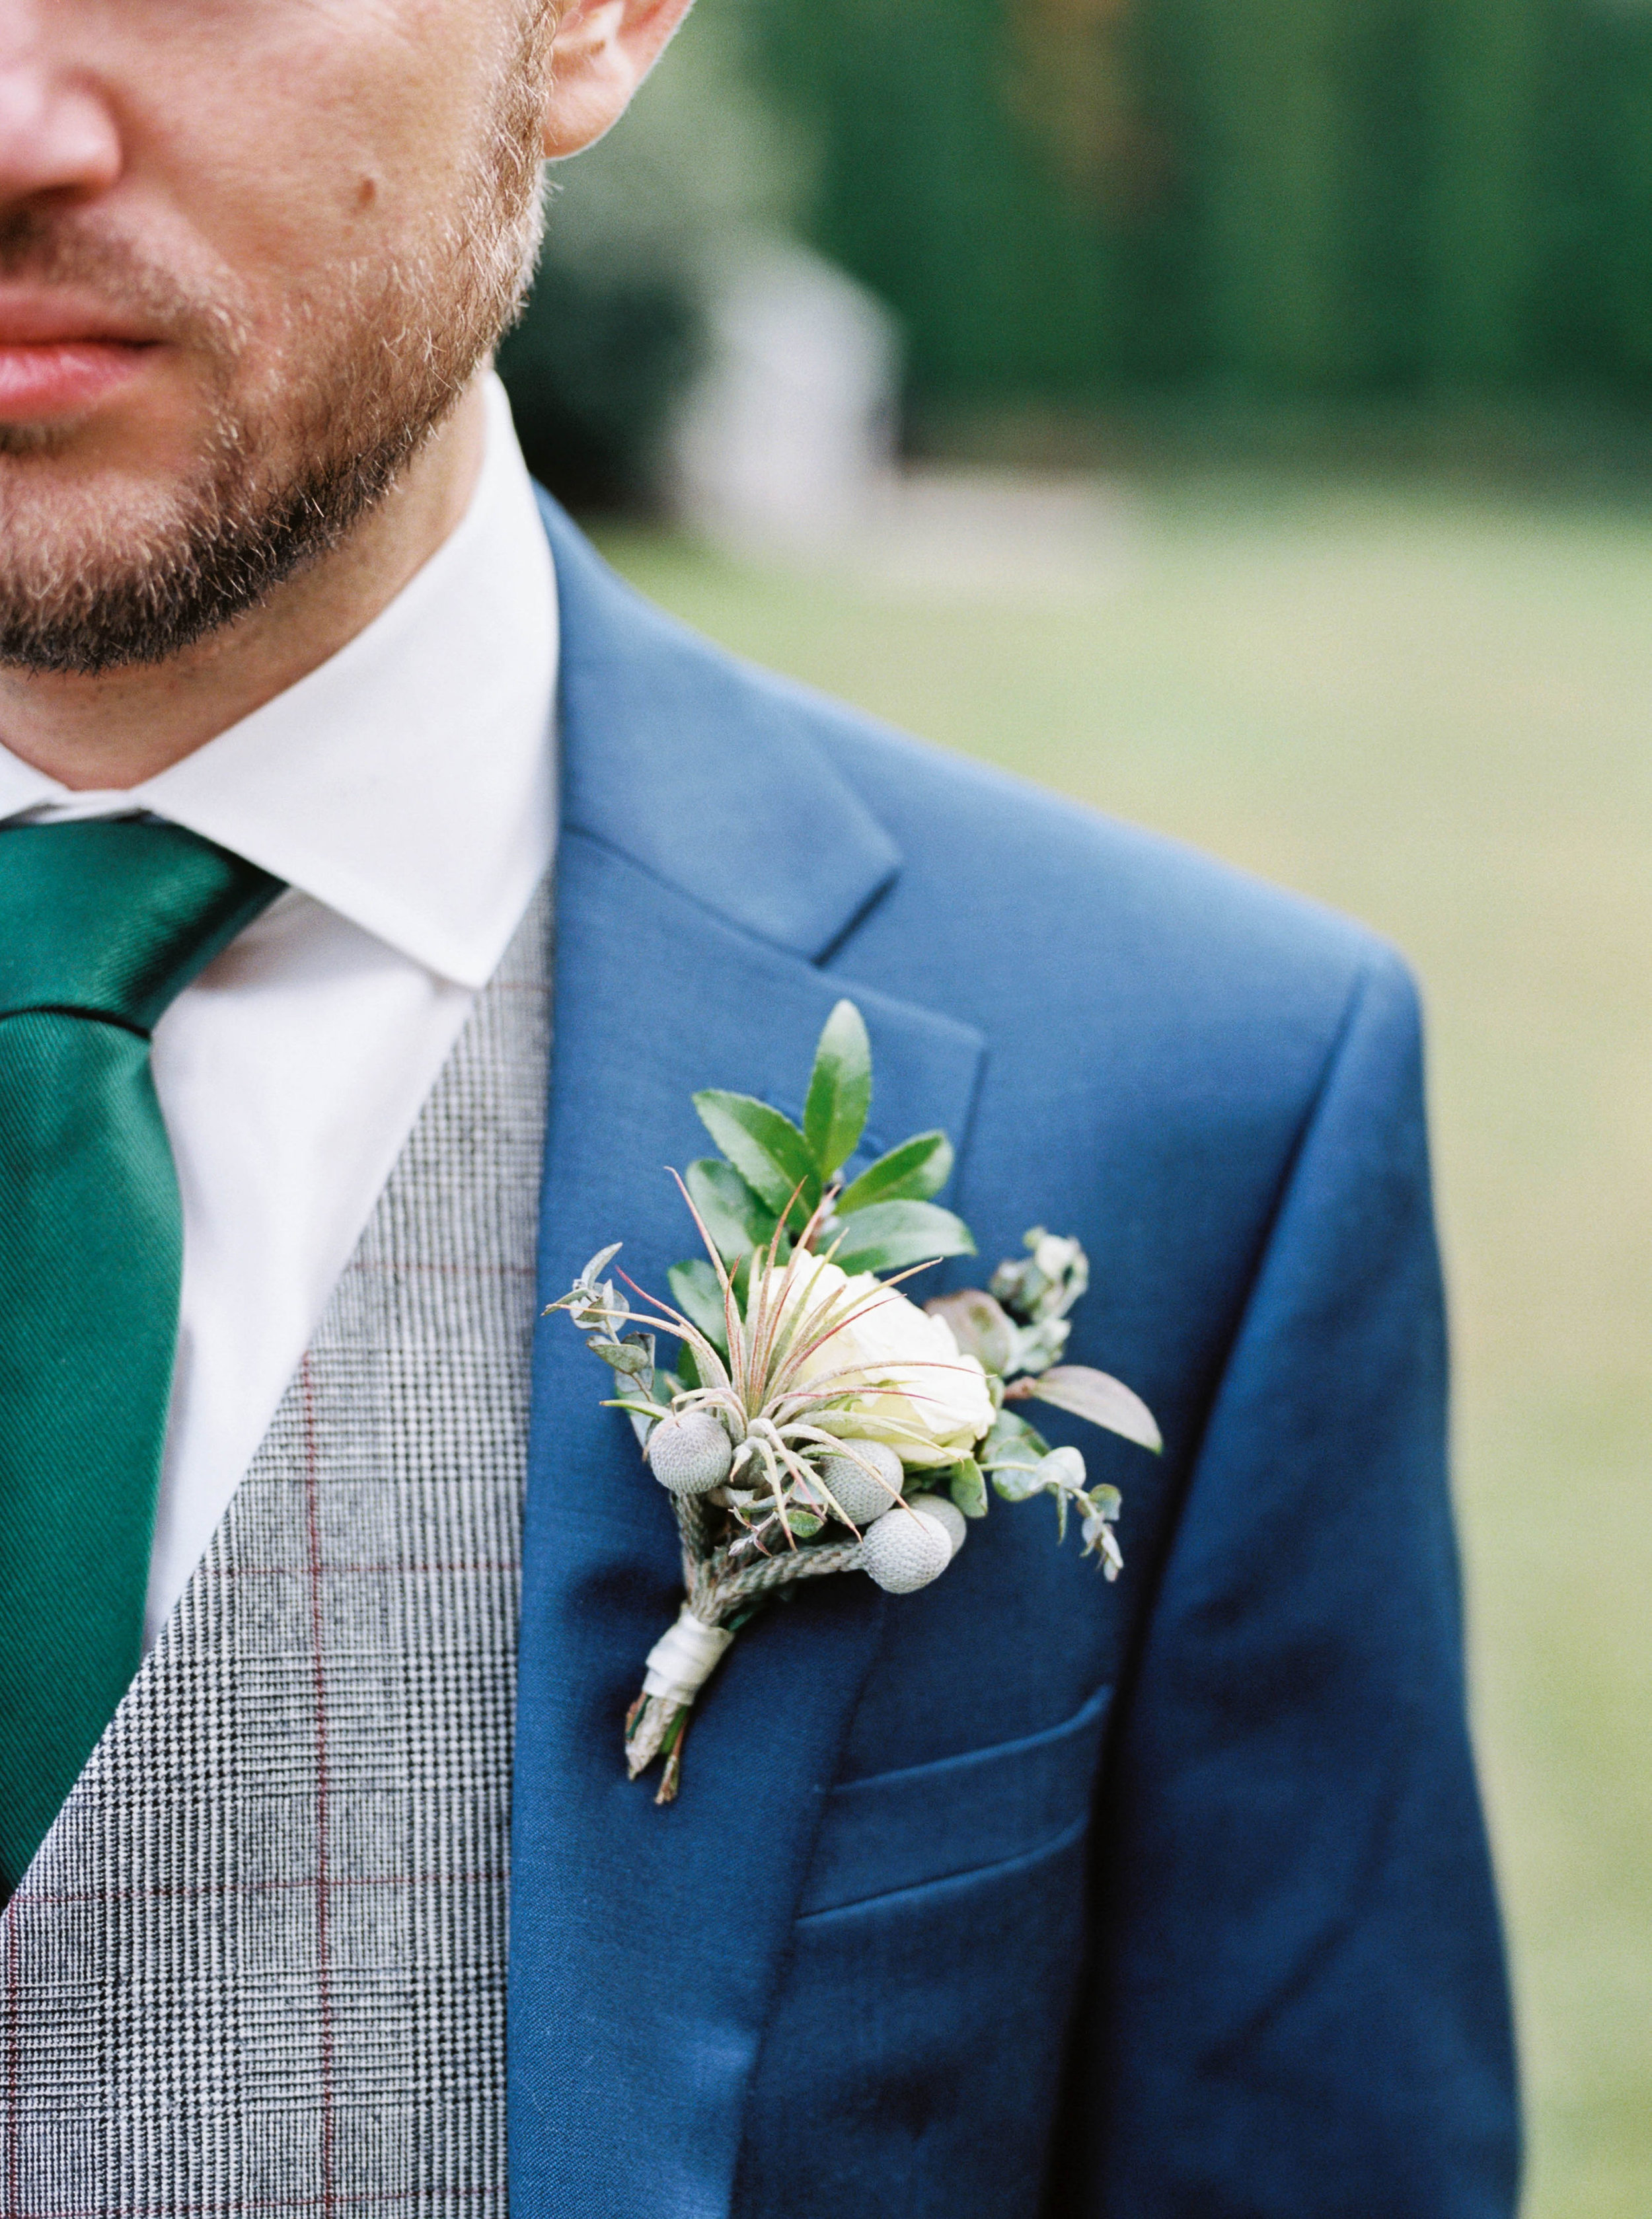 Air plant boutonniere for a fall wedding at the Cordelle // Nashville Wedding Floral Design